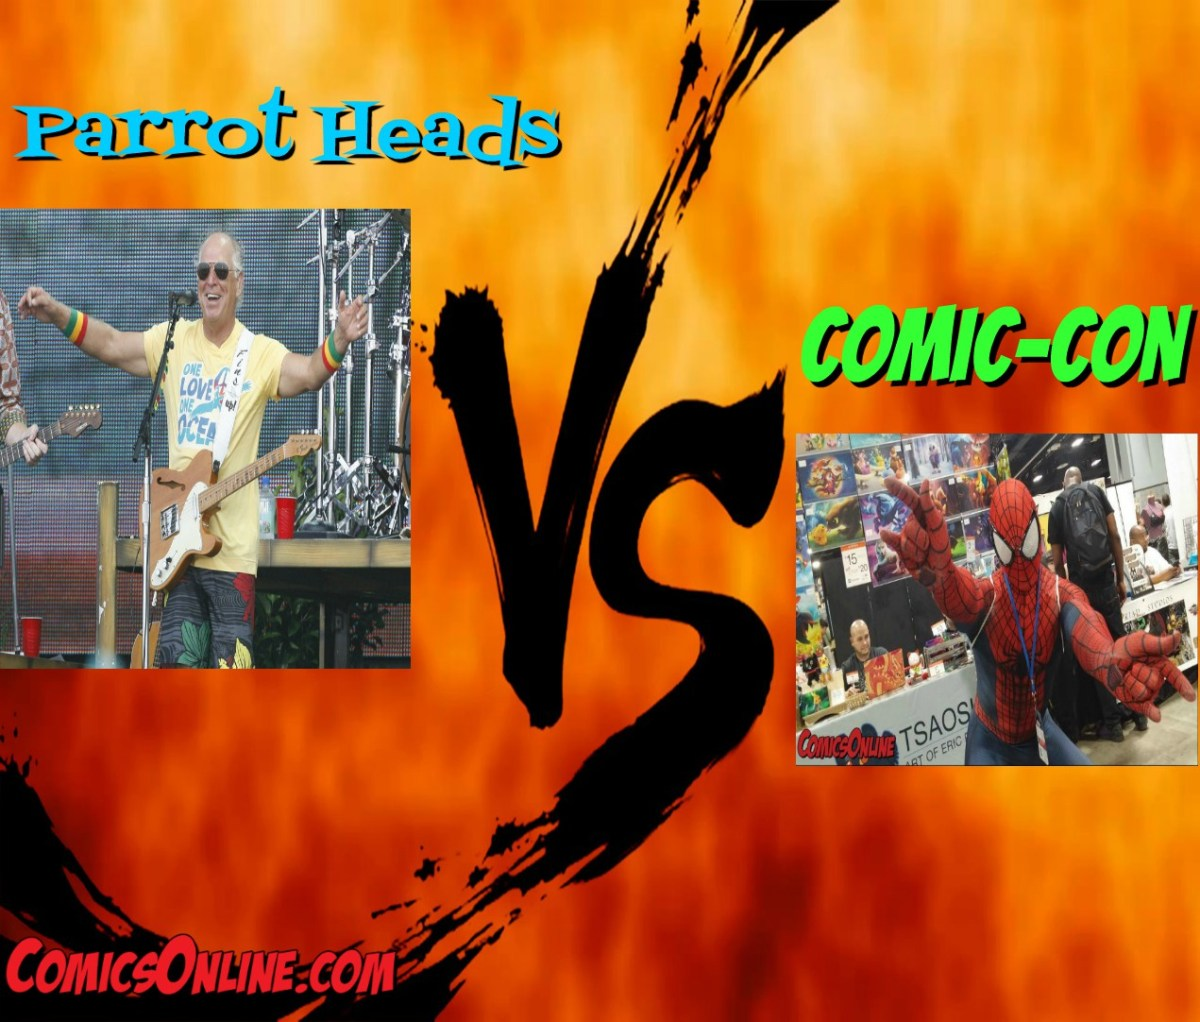 Editorial: Parrot Heads vs Comic-Con